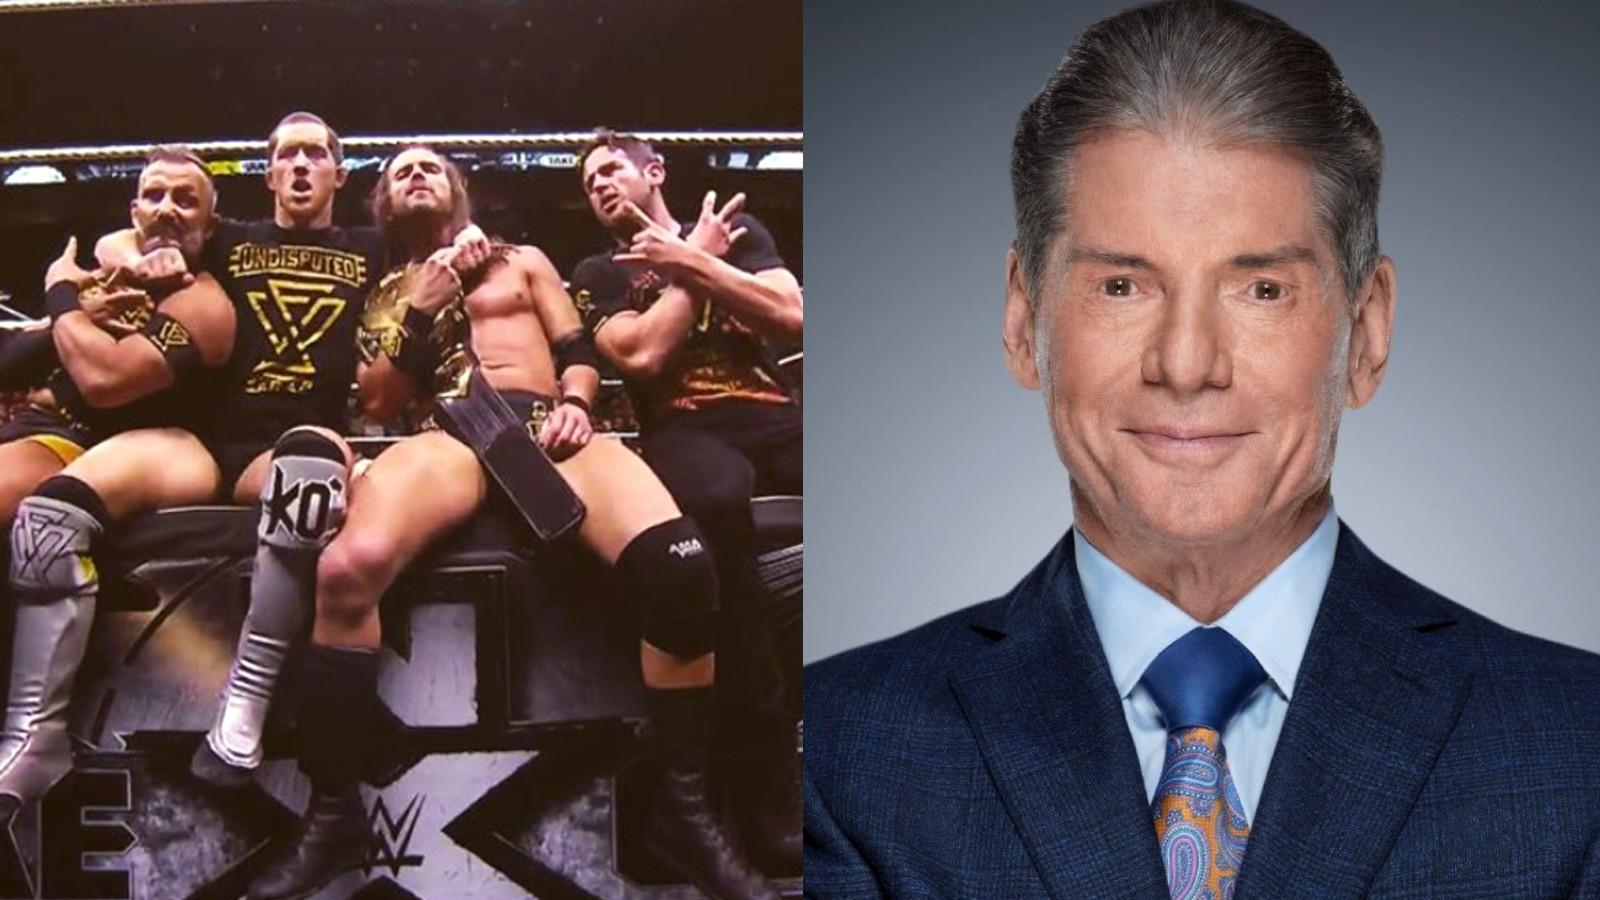 Adam Cole with other wrestlers, next to WWE CEO Vince McMahon